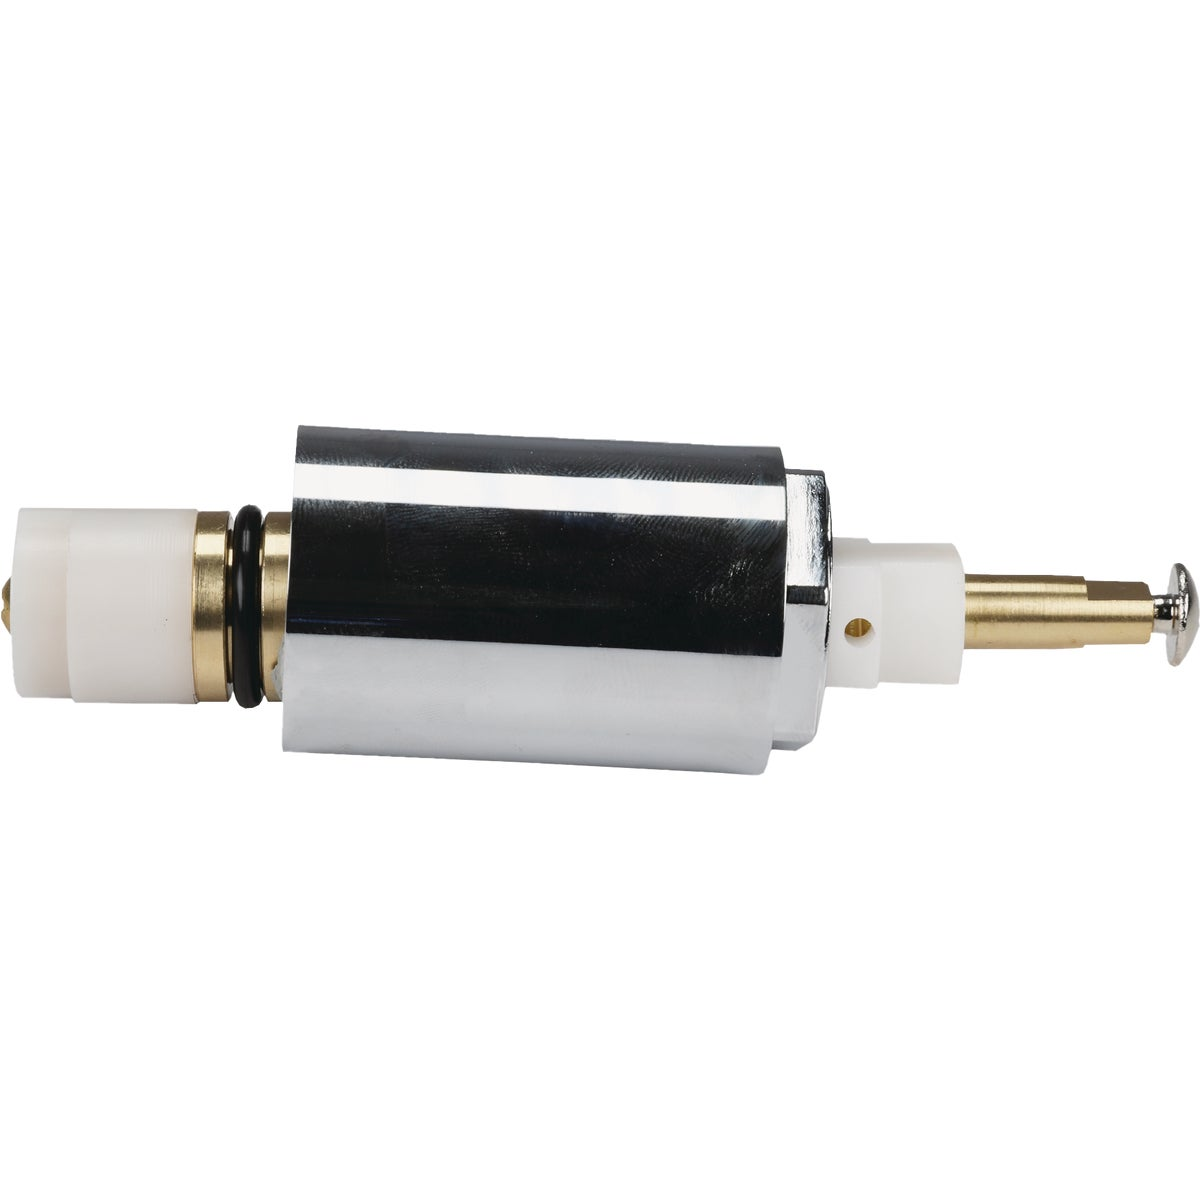 MIXET CARTRIDGE - 88200 by Danco Perfect Match